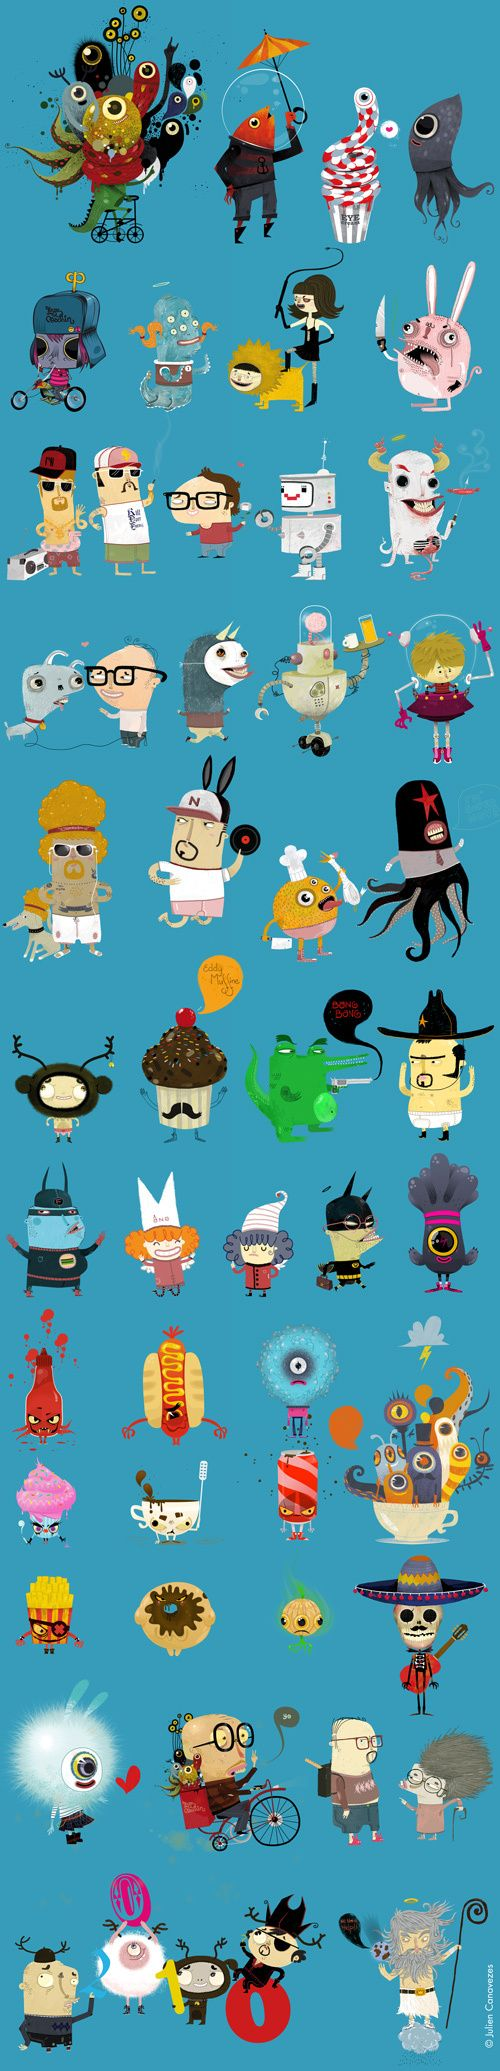 Character Design Behance : Illustrations by julien canavezes via behance